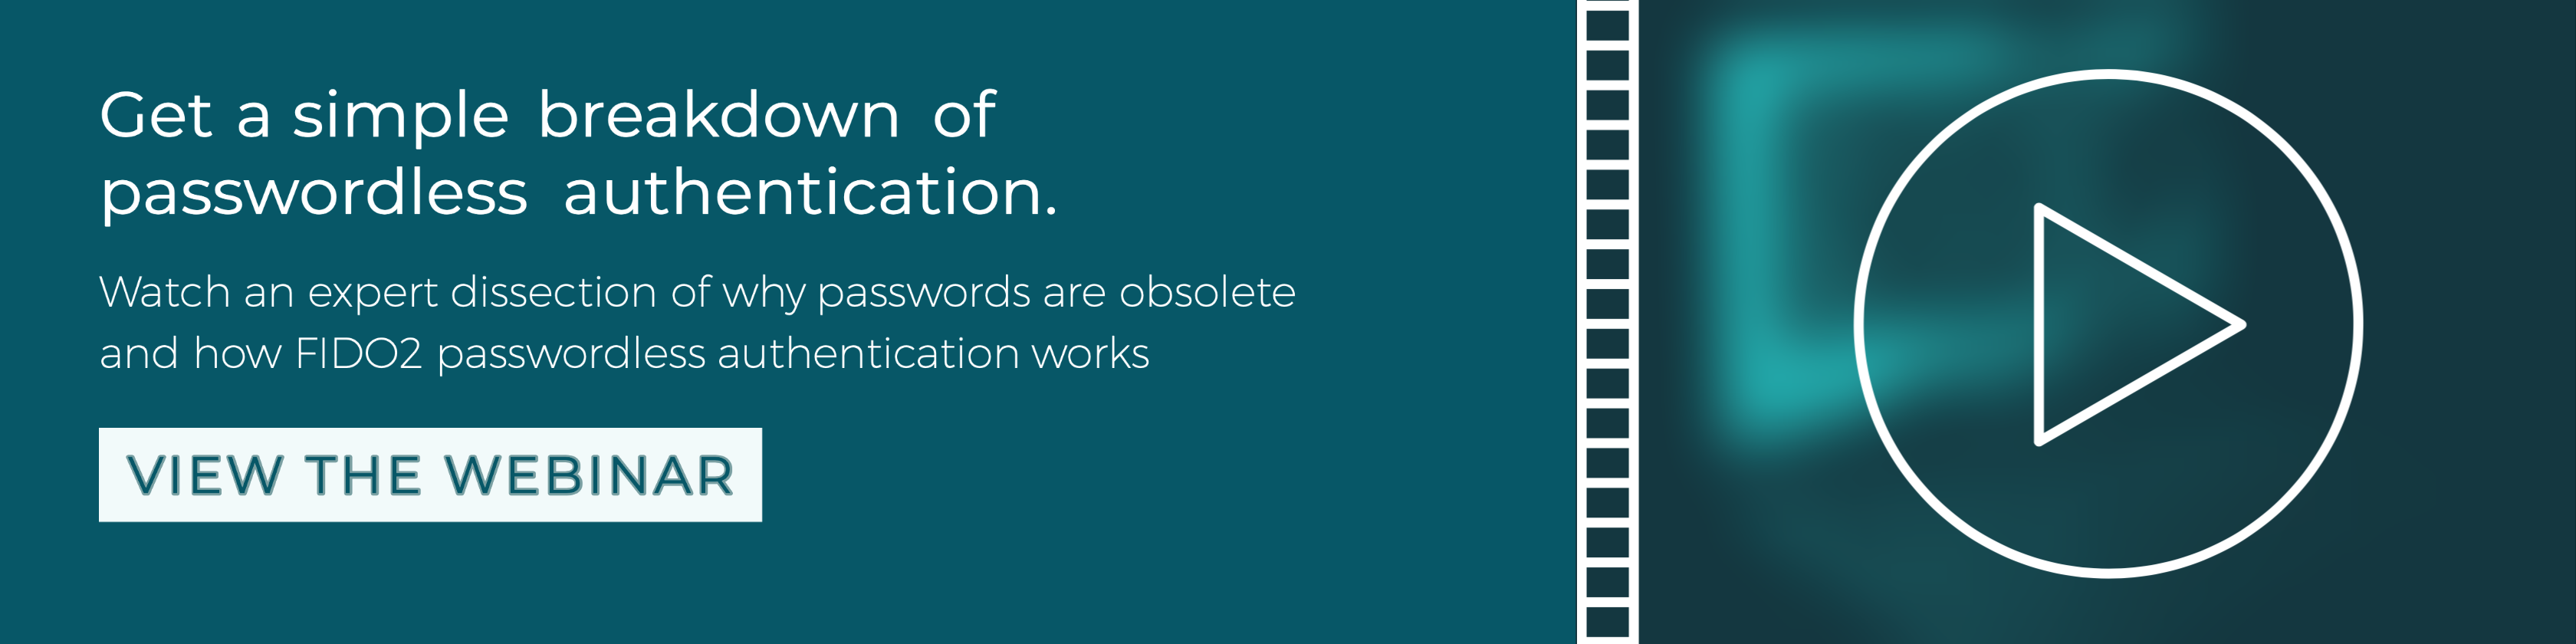 view the webinar to get a simple breakdown of passwordless authentication